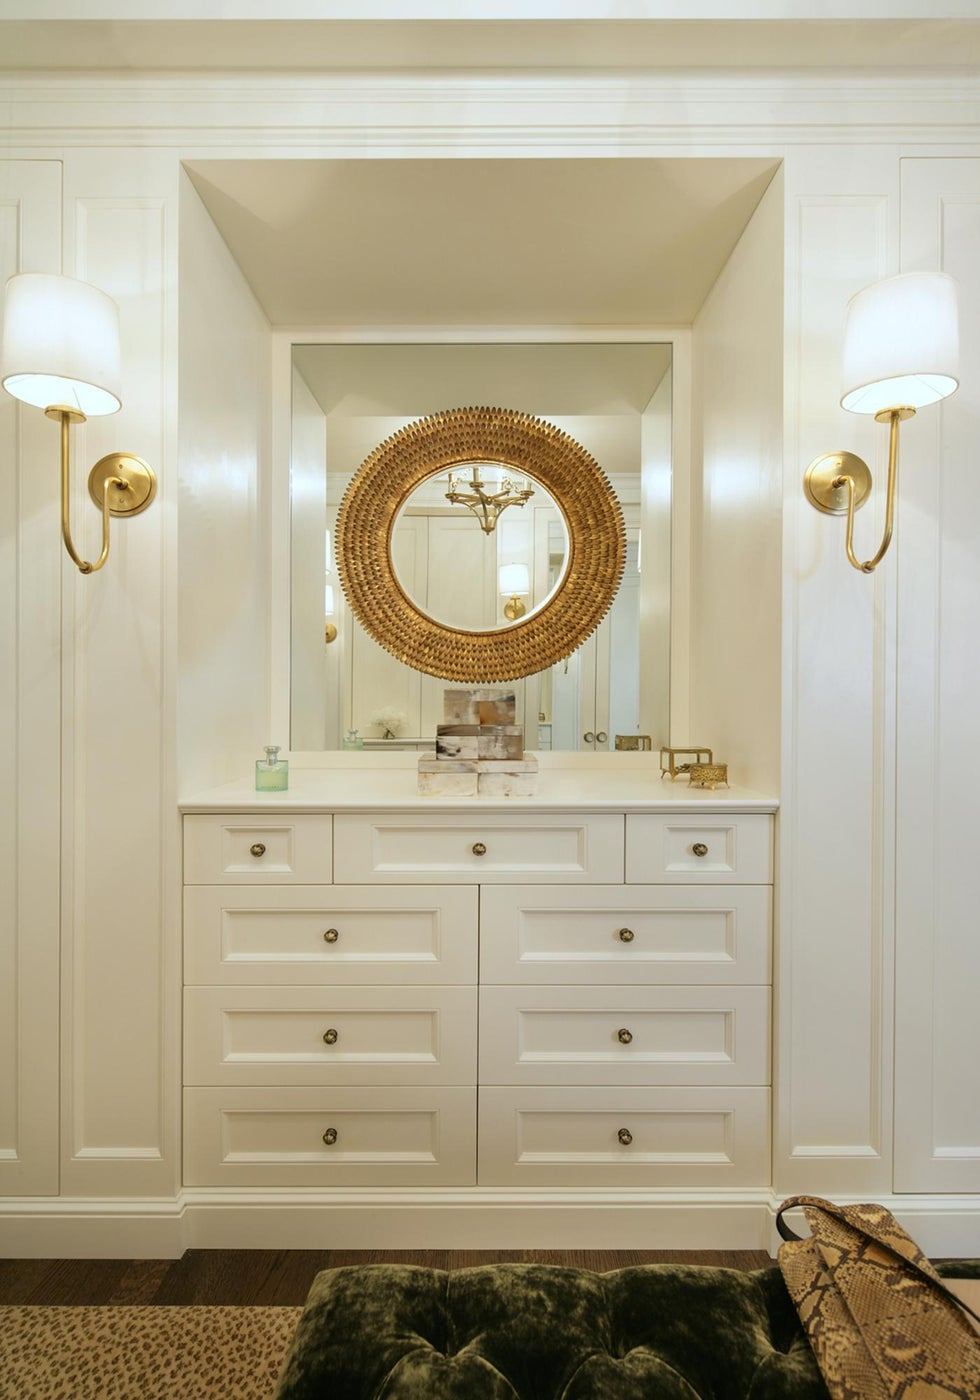 Dressing room designed with custom cabinetry and gold finishes